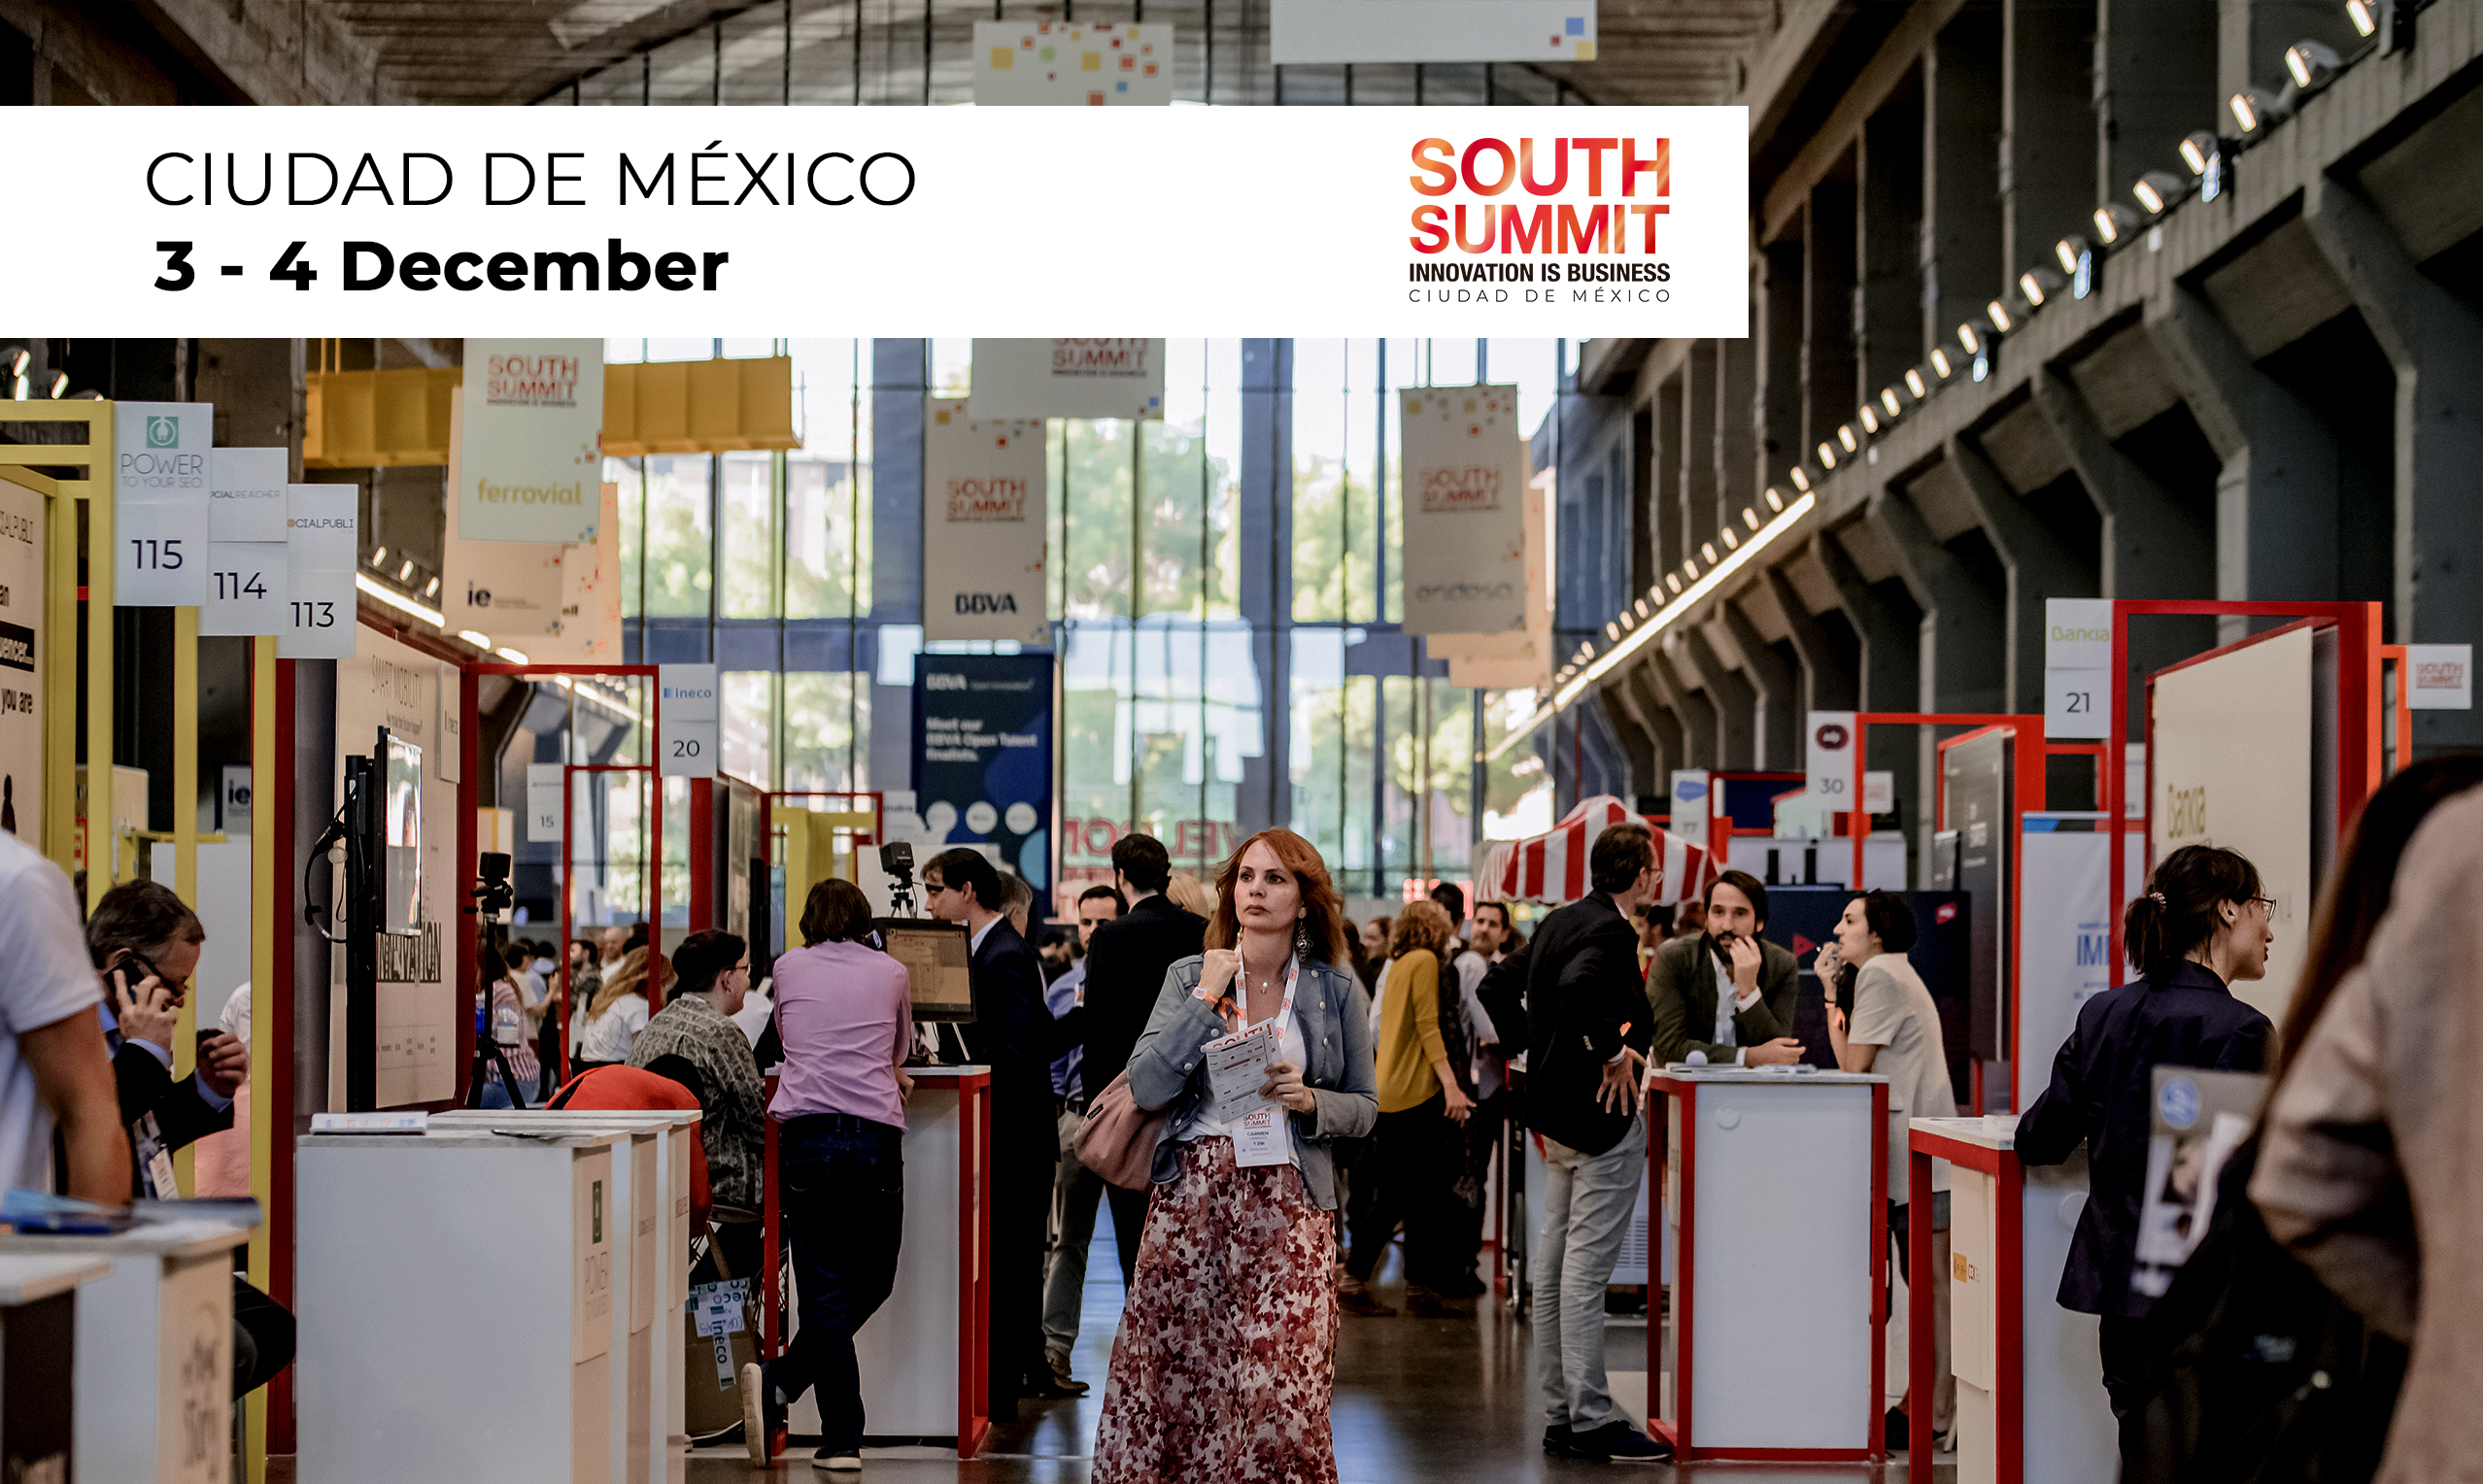 South Summit CDMX